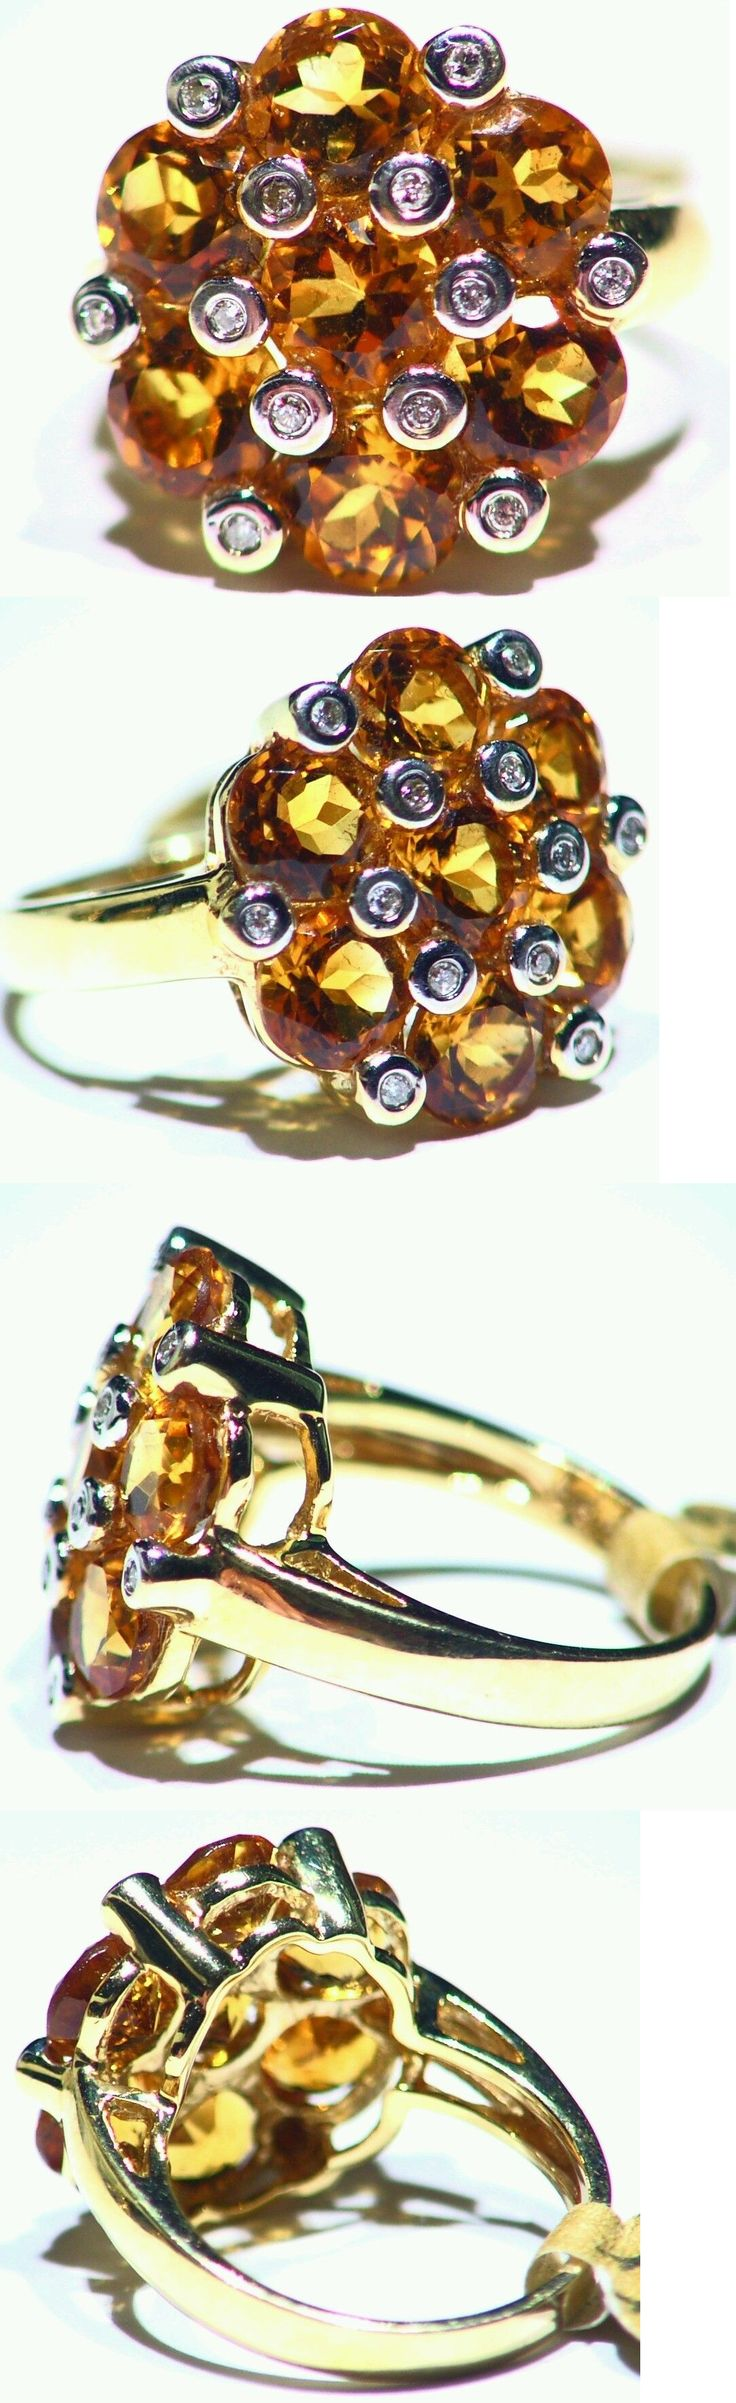 Rings 165014: 5.66Ct 14K Gold Natural Citrine Cut Diamond Vintage Wedding Engagement Ring BUY IT NOW ONLY: $381.0